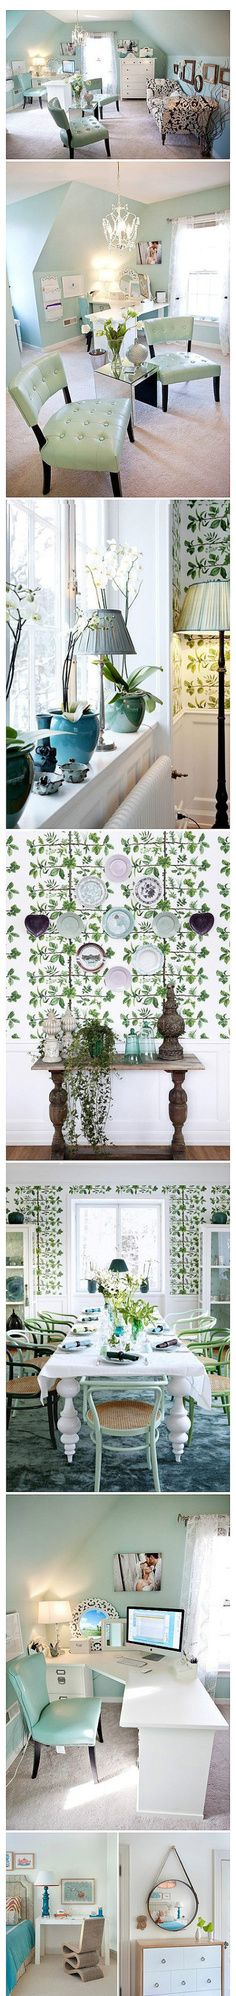 Green mint decor, good for summer.